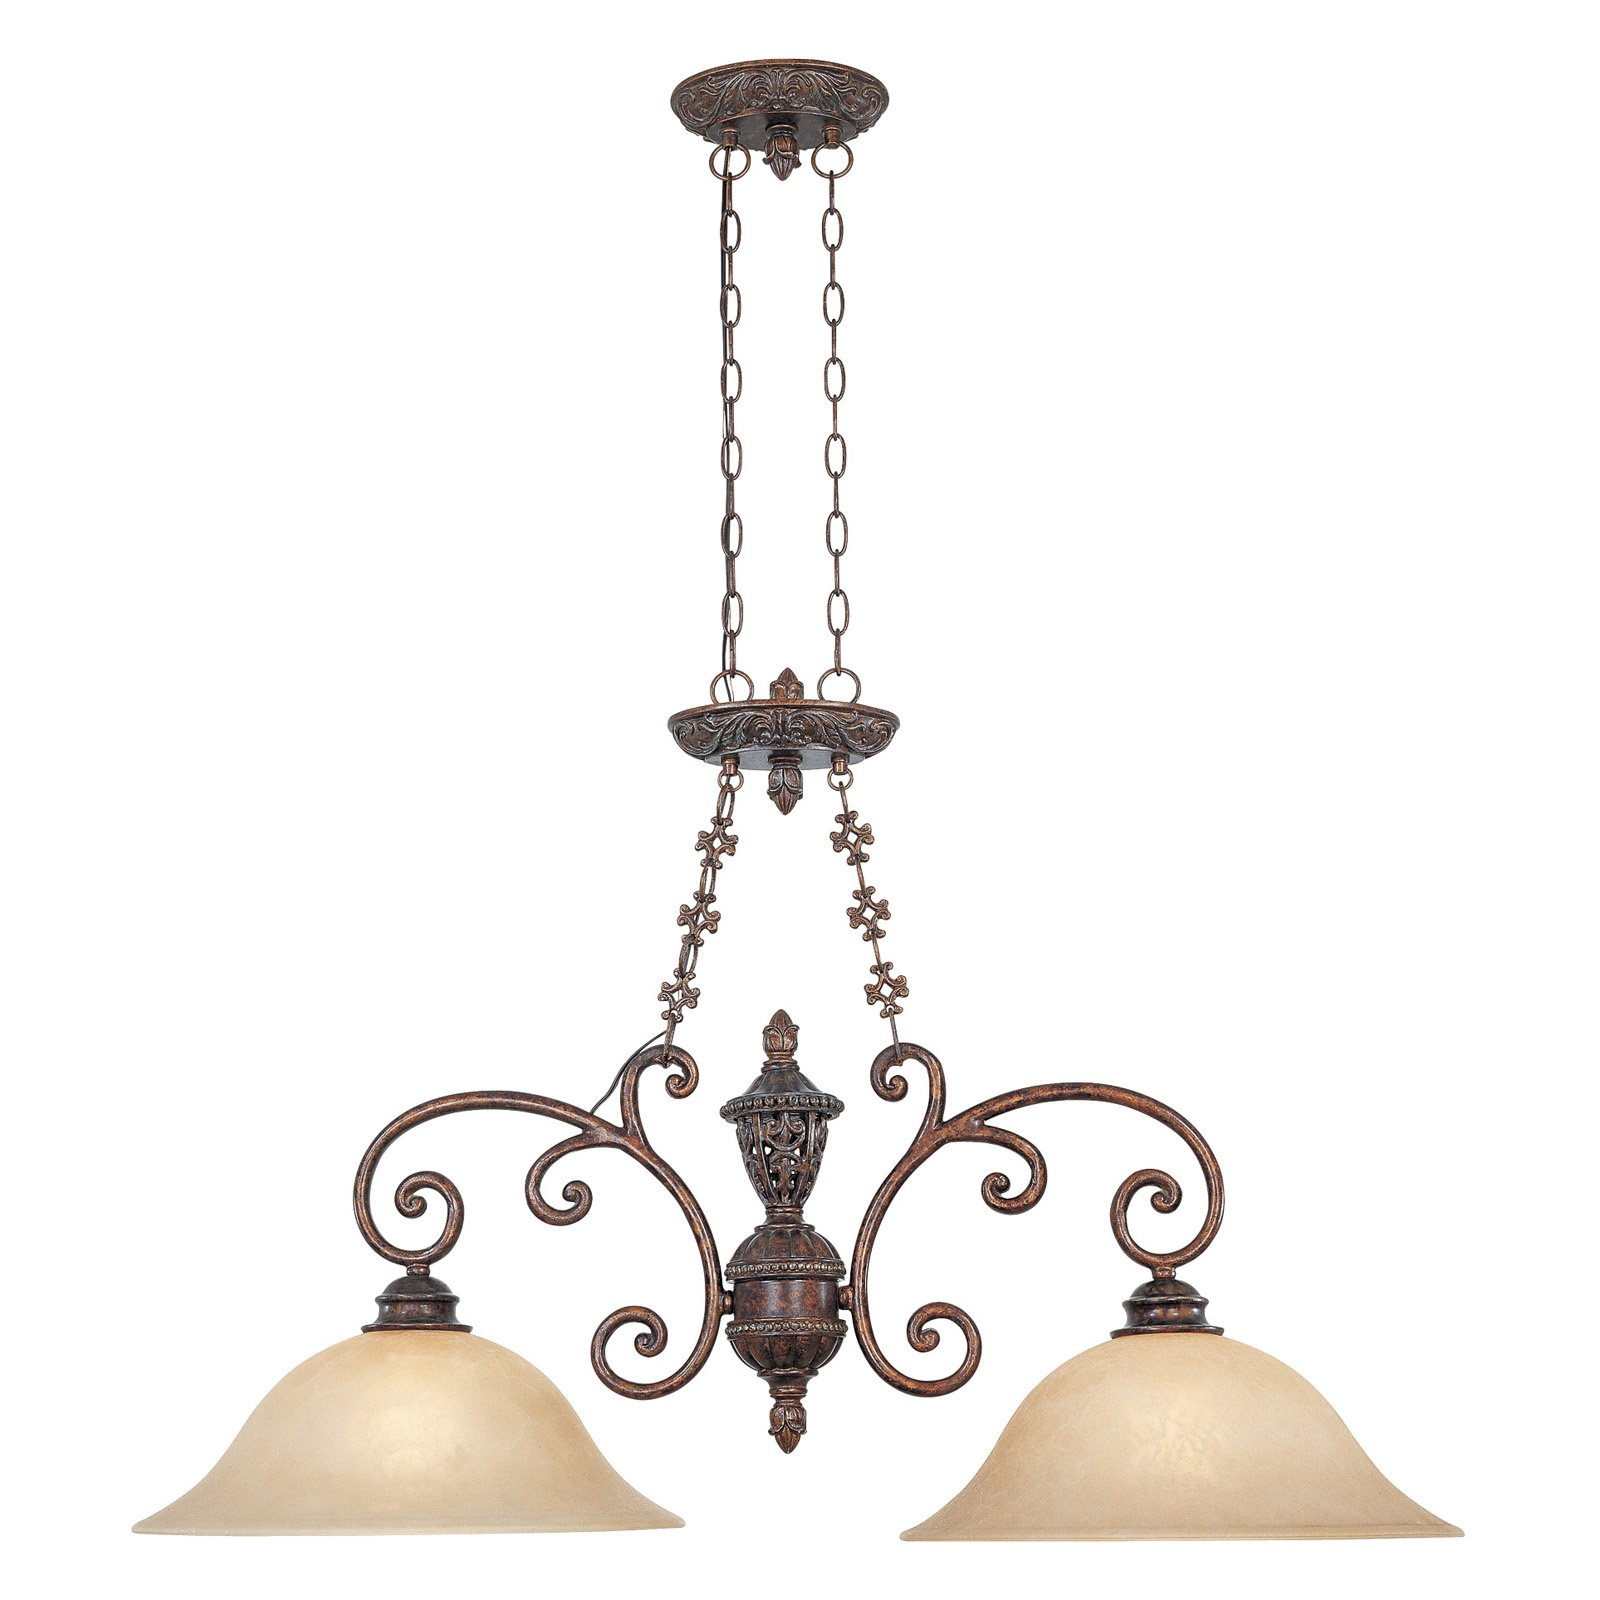 Designers Fountain 97538 Amherst 2 Light Island in Burnt Umber Finish